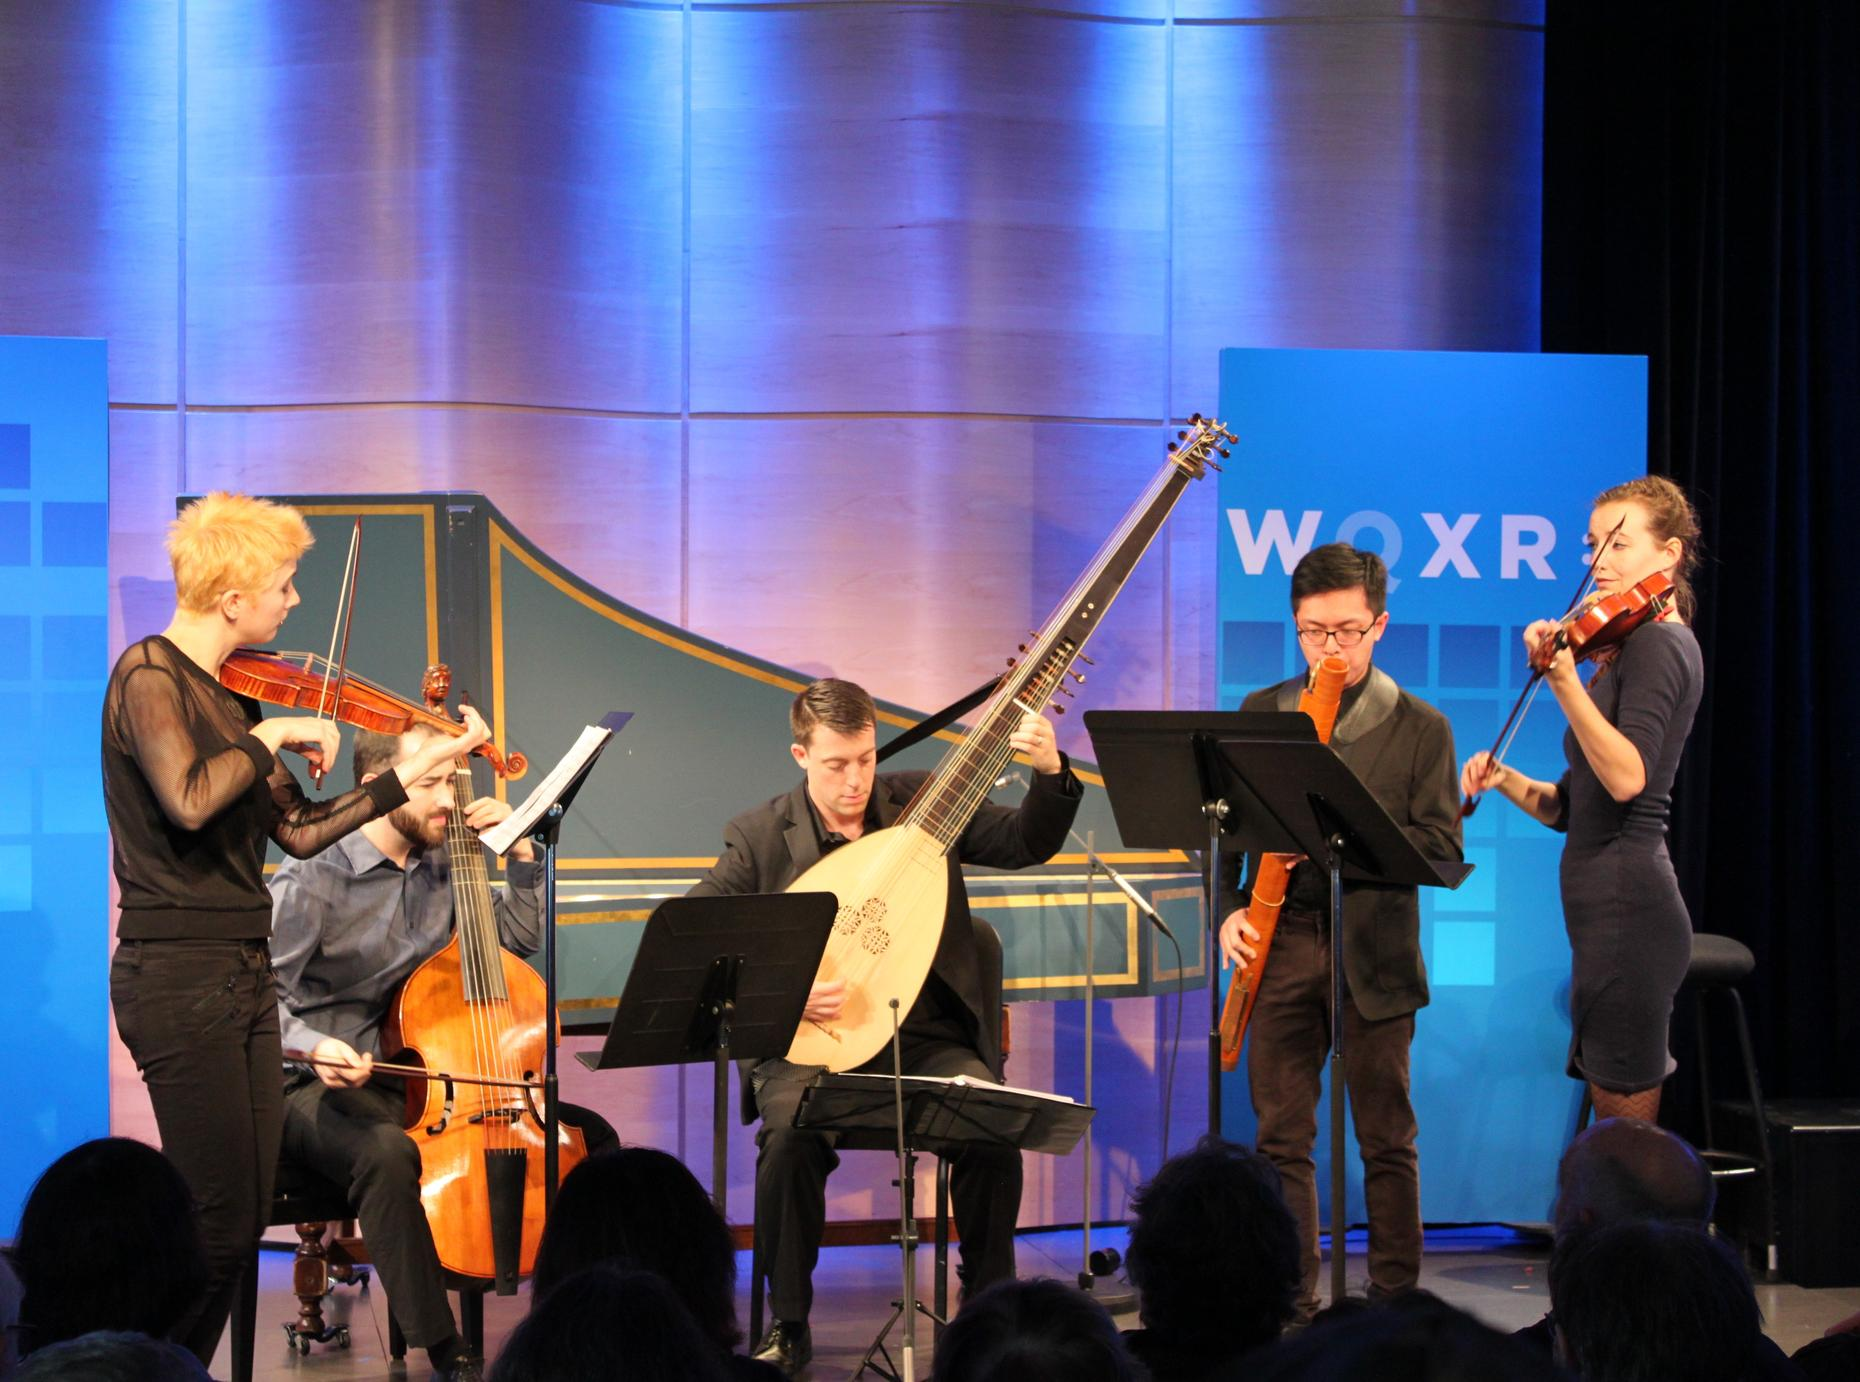 WQXR's Midday Masterpieces: Musicians From Juilliard's Historical Performance Program